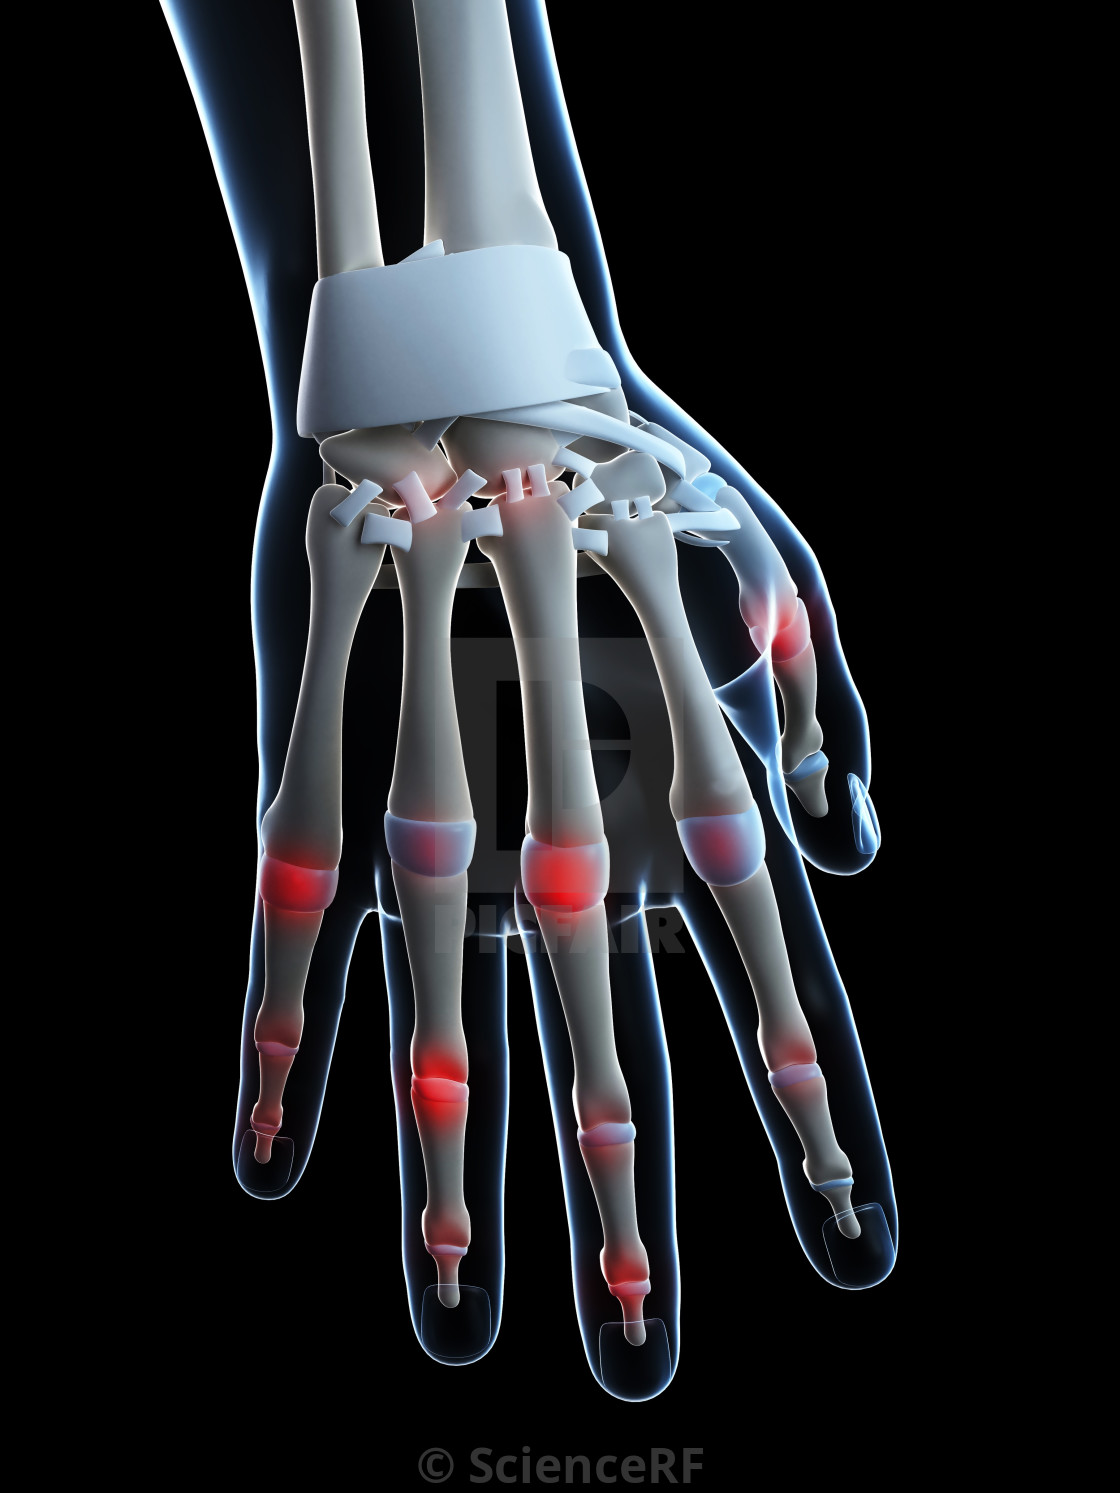 Human finger joints, artwork - License, download or print for £31.45 |  Photos | Picfair